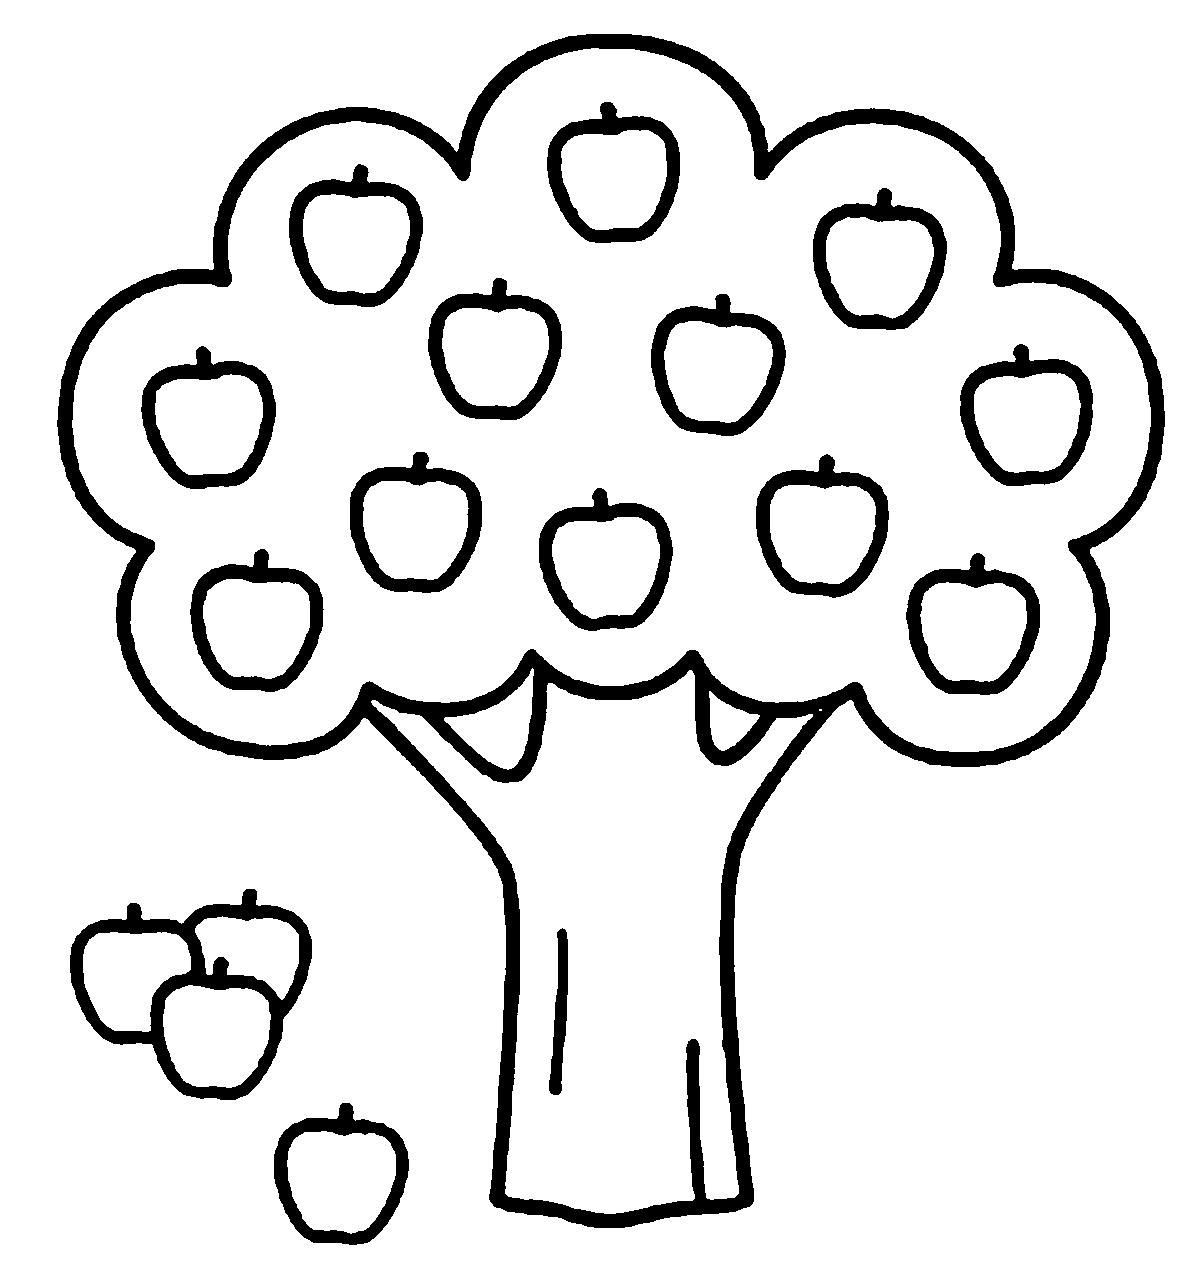 1203x1279 Coloring Pages Of Apple Tree Download Coloring For Kids